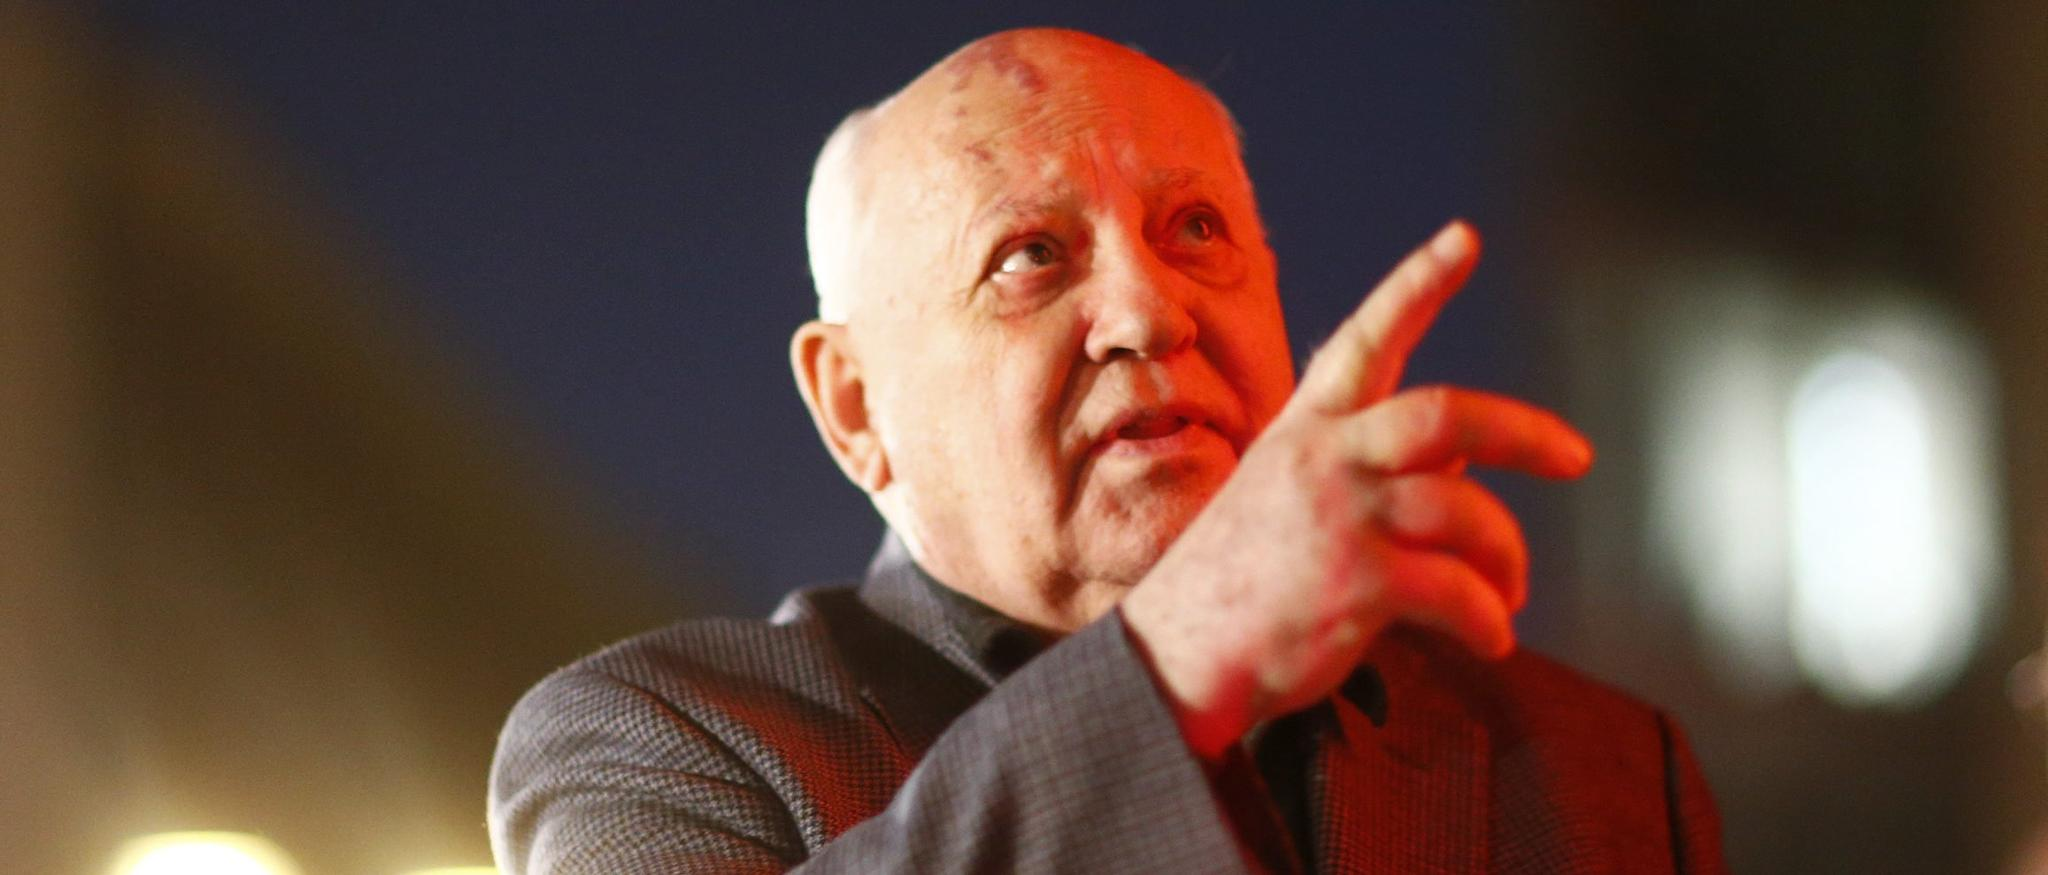 Gorbachev: Trump's Proposal To Exit From Nuke Treaty Not The Work Of A 'Great Mind' https://t.co/0683Y1gAjX https://t.co/wqBLrRwV5n